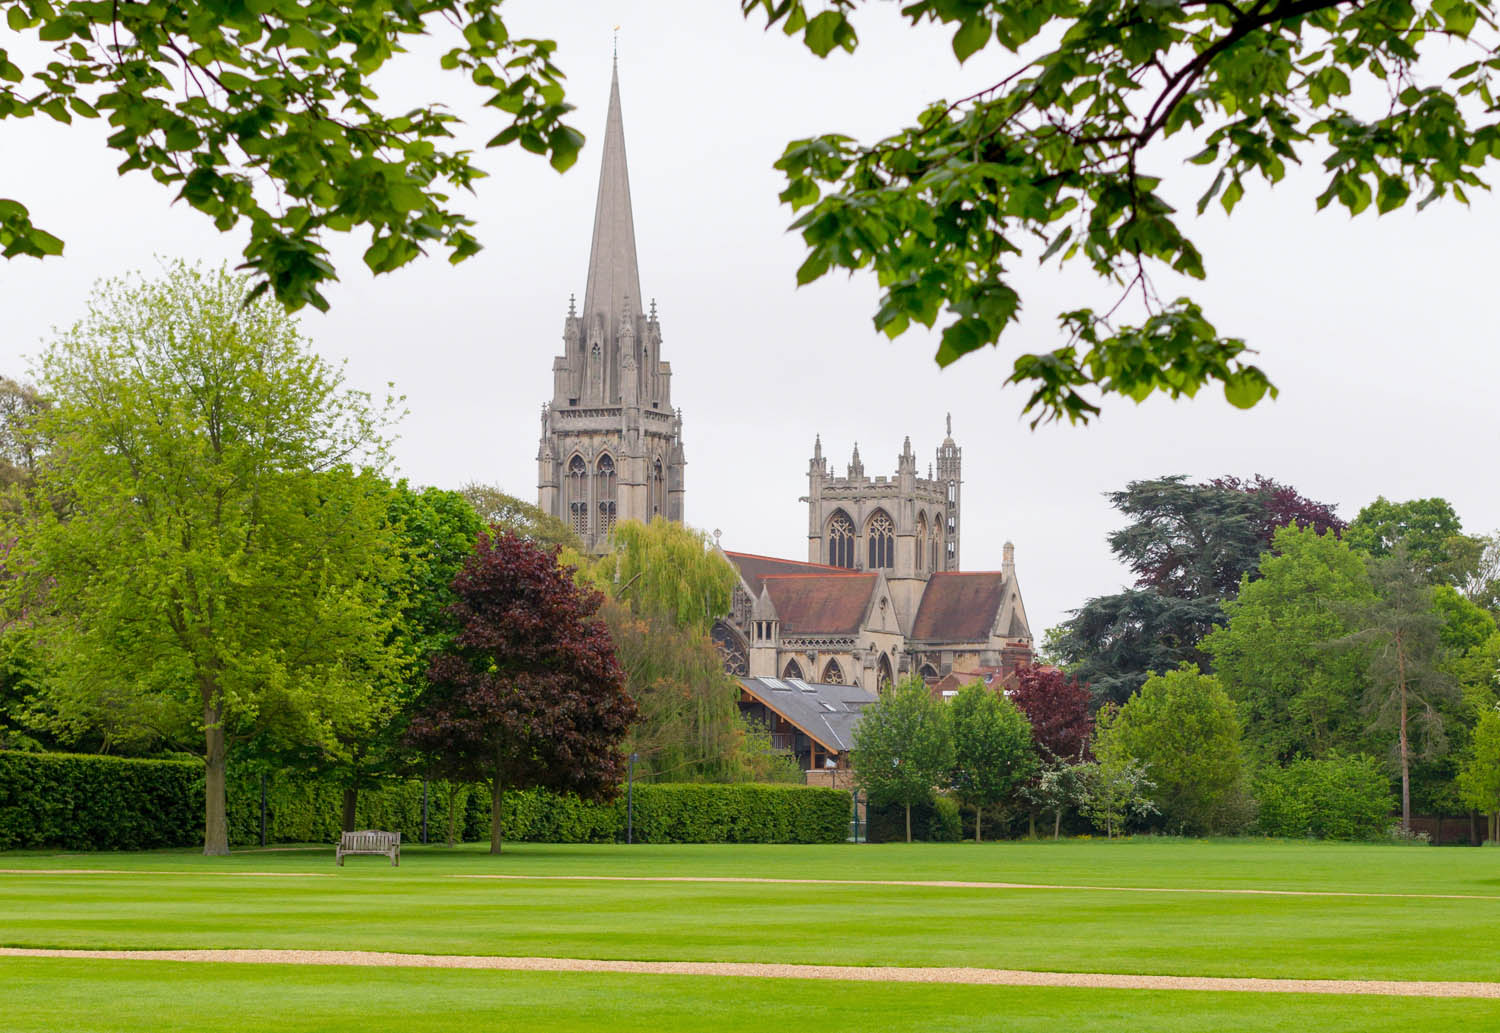 View of a Cambridgeshire church and grounds